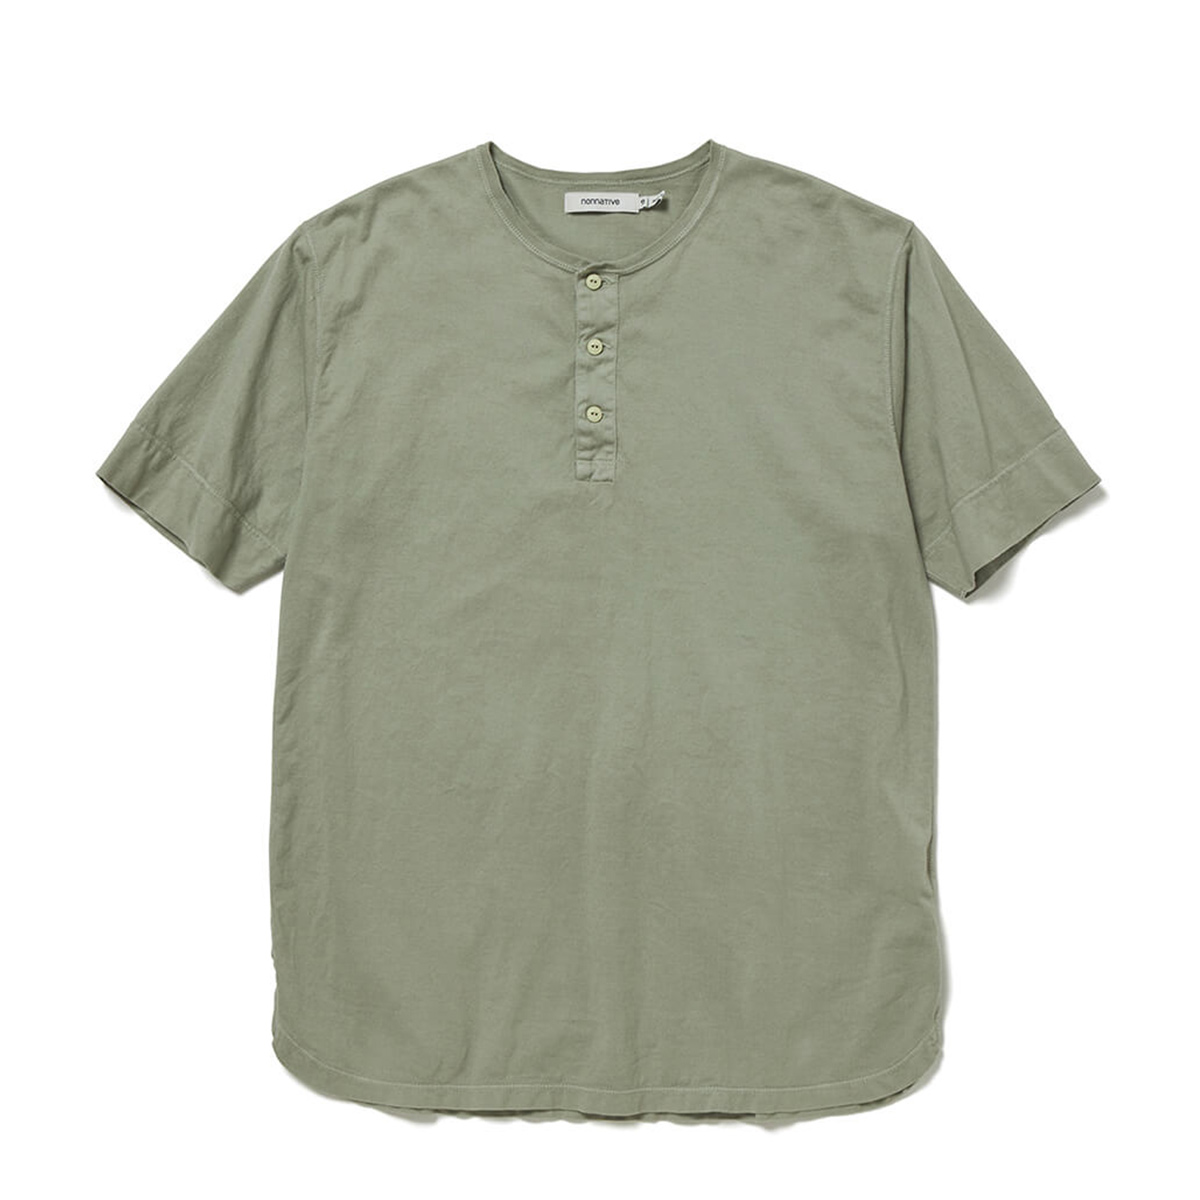 nonnative / TROOPER HENLEY NECK S/S TEE COTTON JERSEY OVERDYED (Gray)